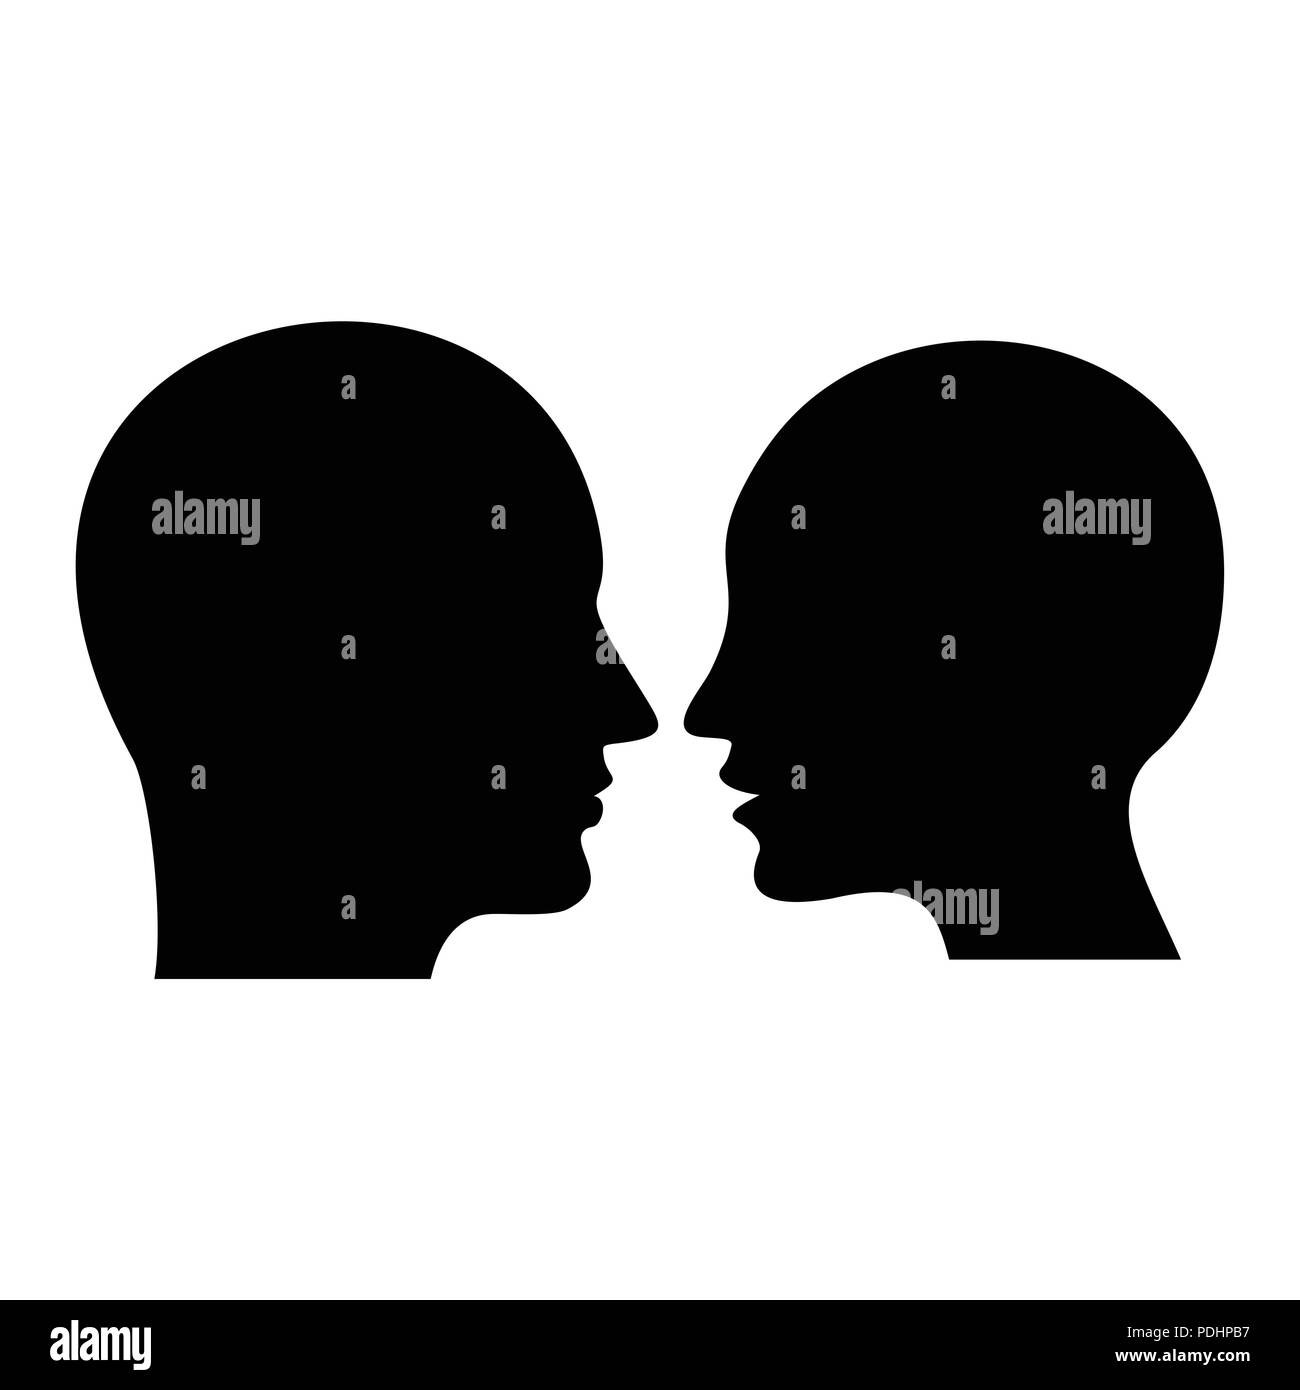 Black silhouette of man and woman head